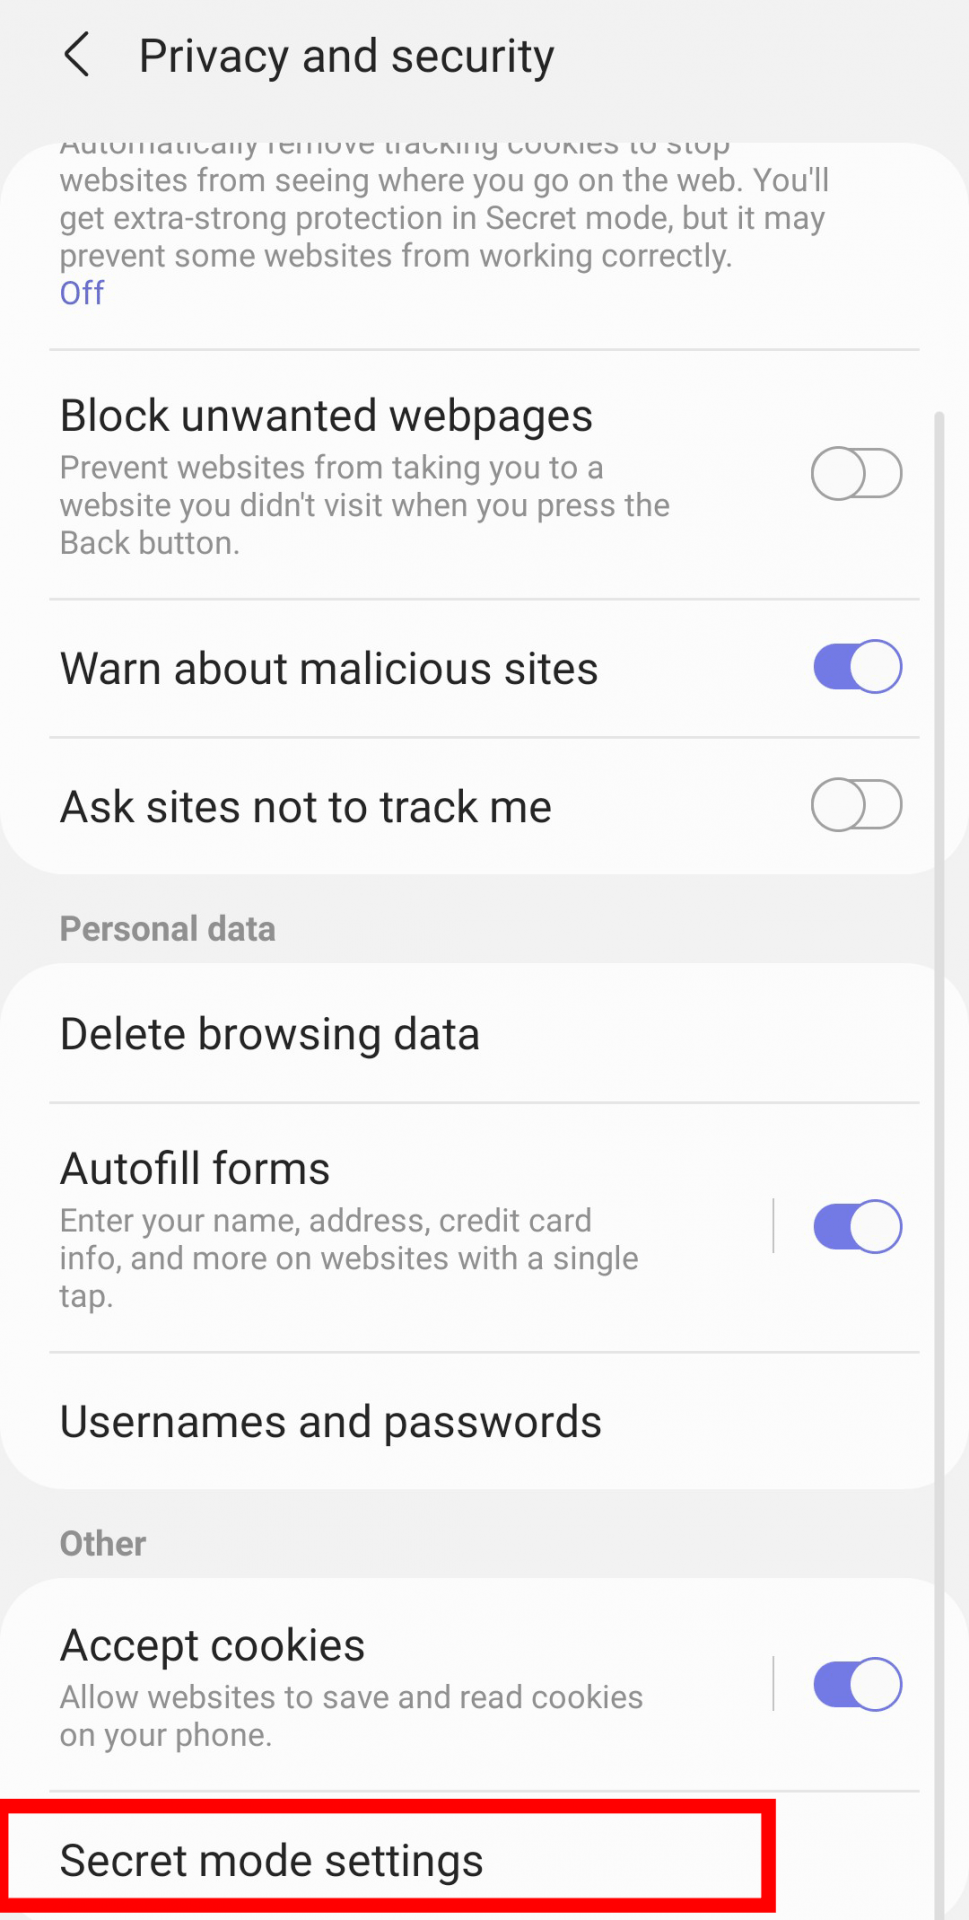 how to set password for Secret mode in Samsung internet